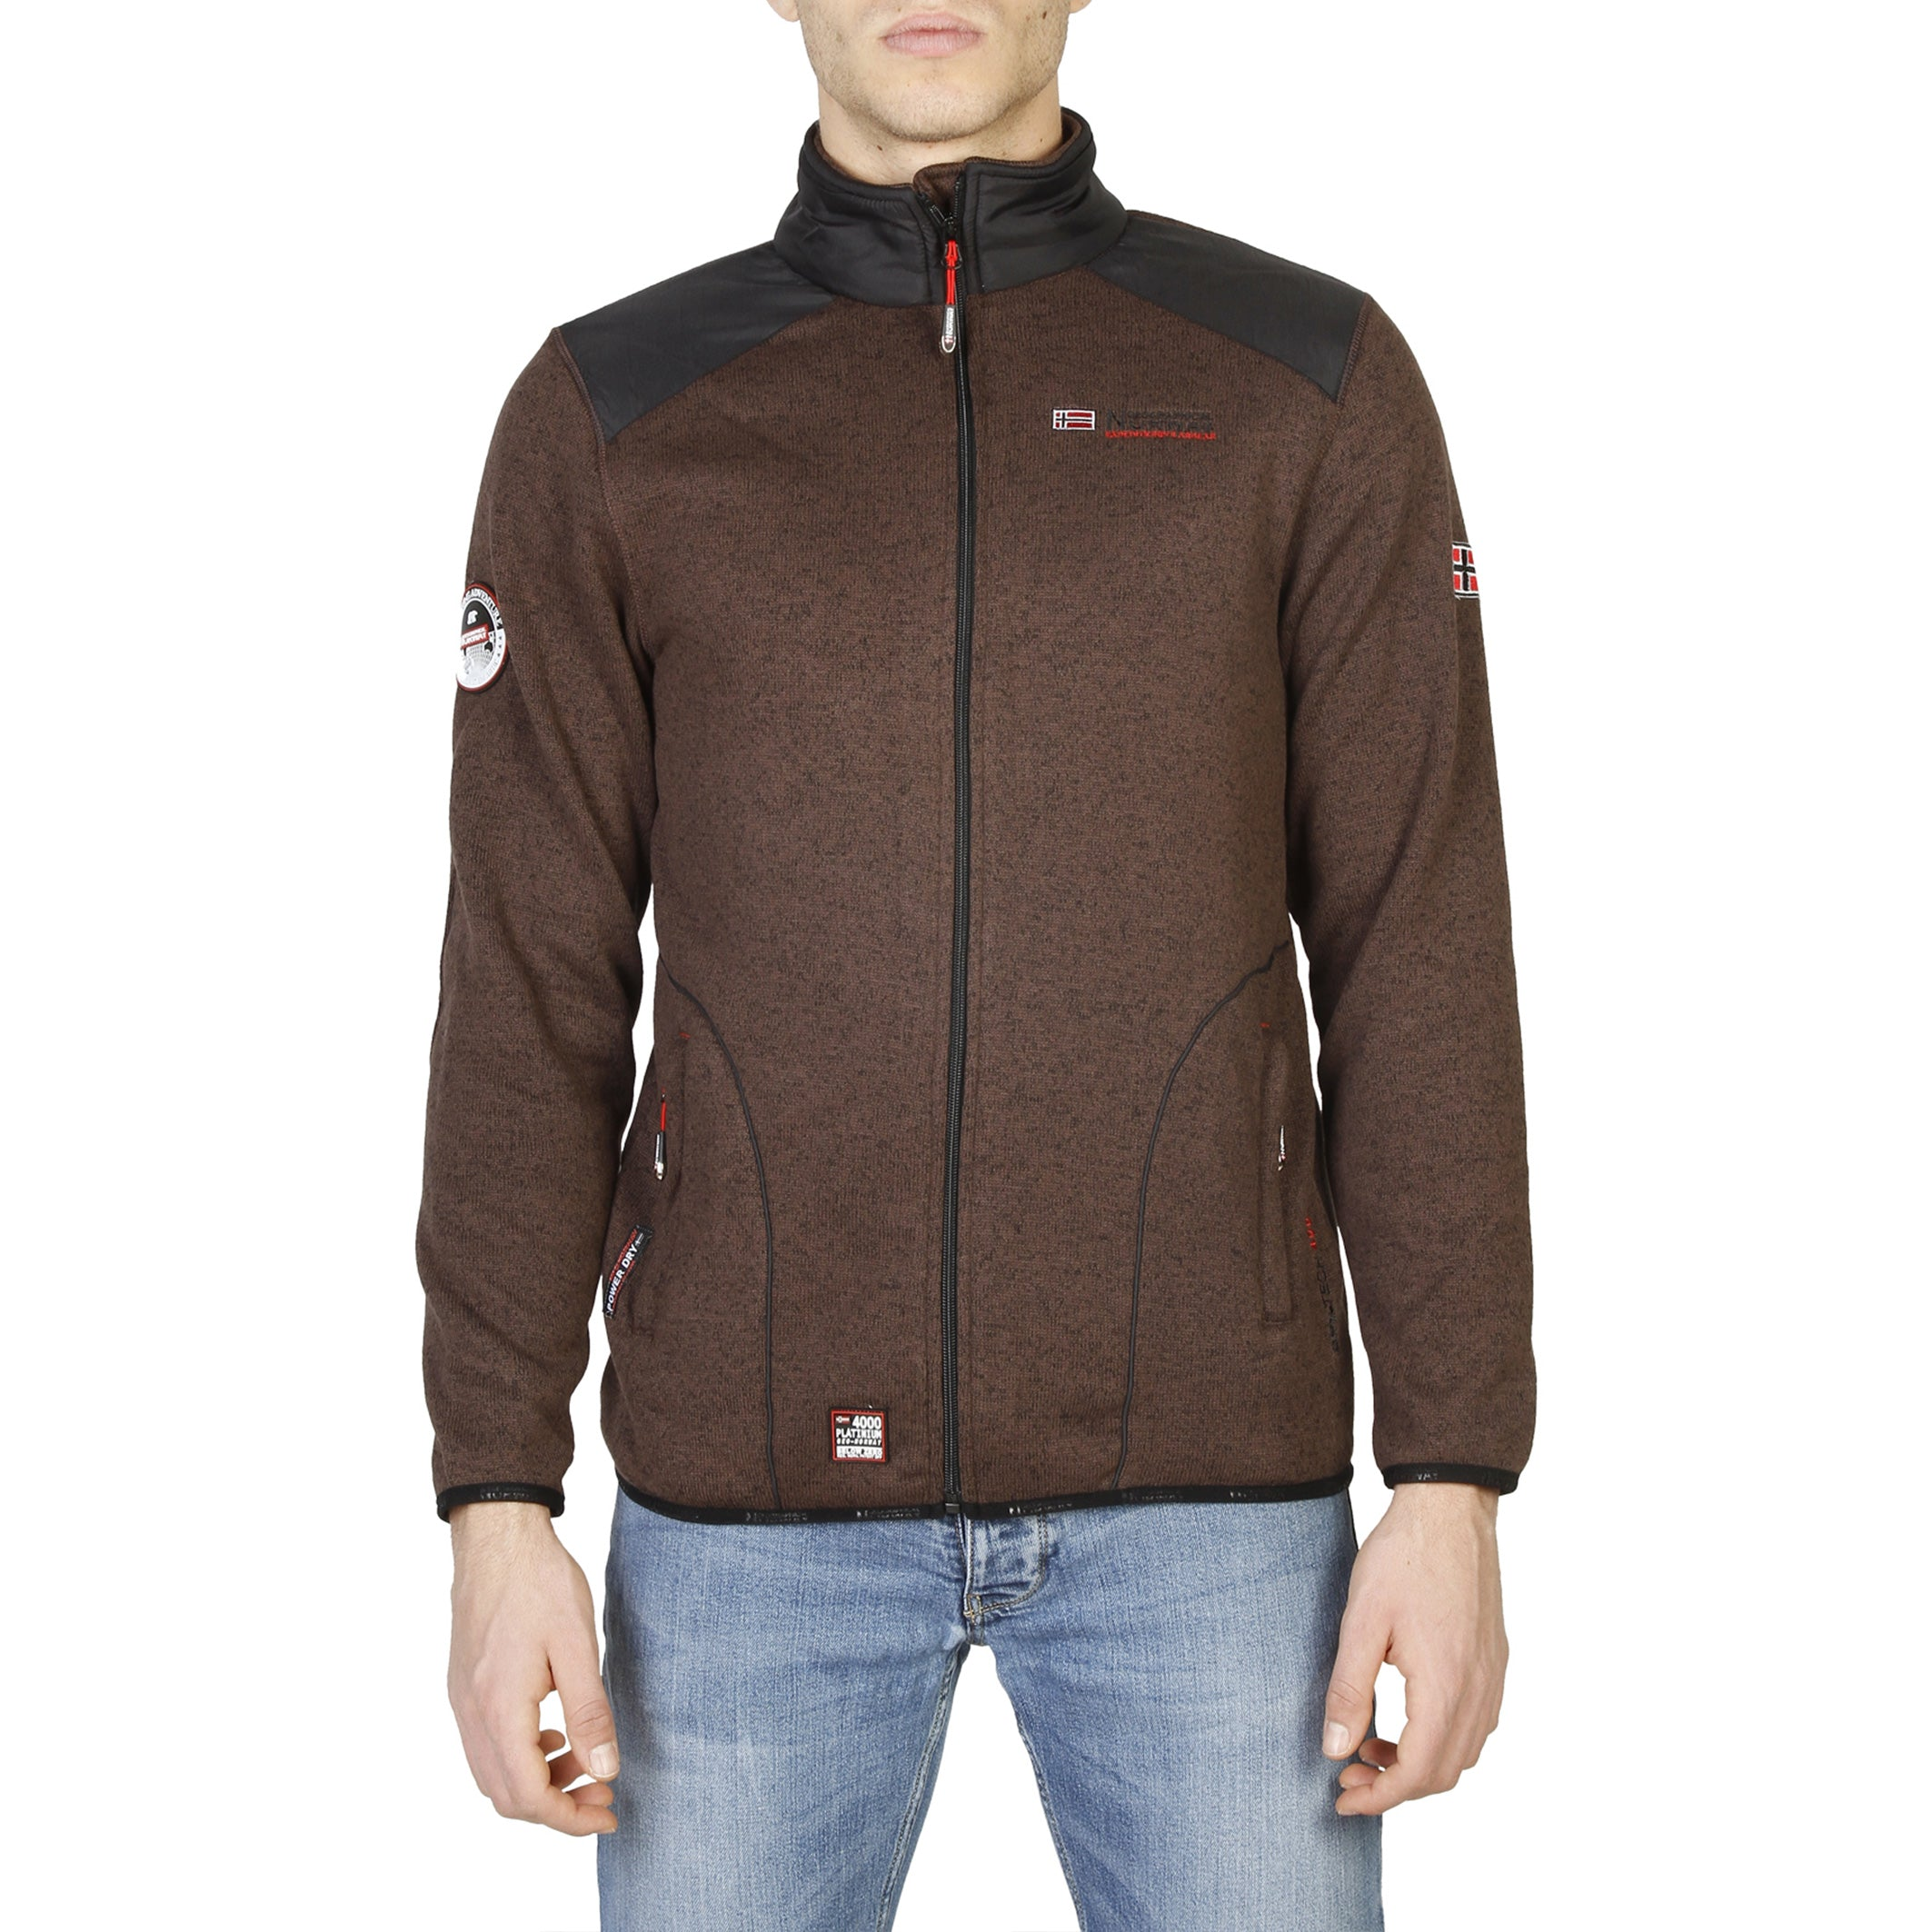 Abbigliamento Felpe Geographical Norway - Tuteur_man Marche Famose